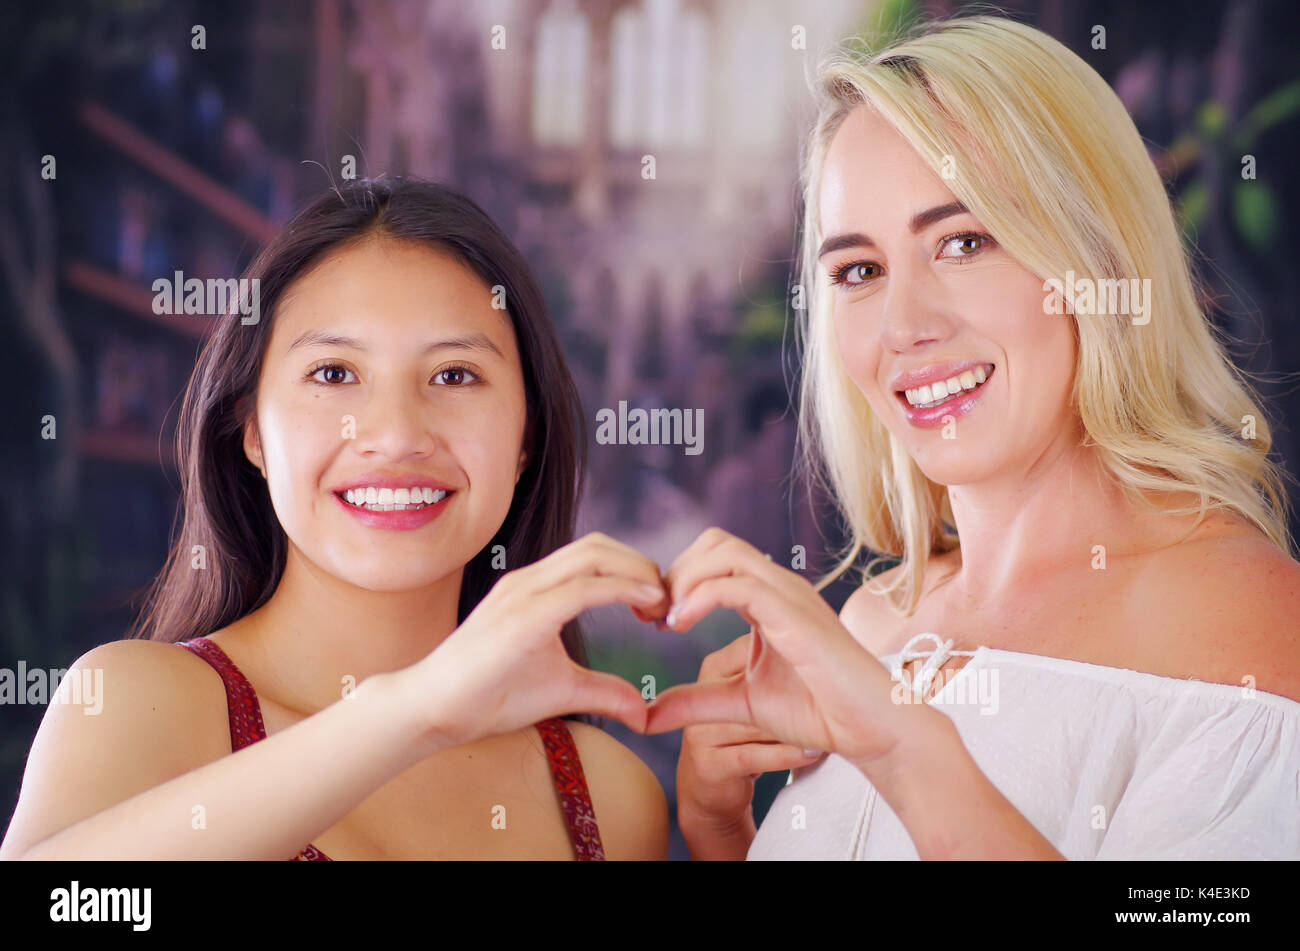 Two young women blonde and latin girl smiling and breaking racism idiosyncrasy from a american person and foreign people, both doing a heart sign with teir hands, racism, violence or discrimination concept - Stock Image